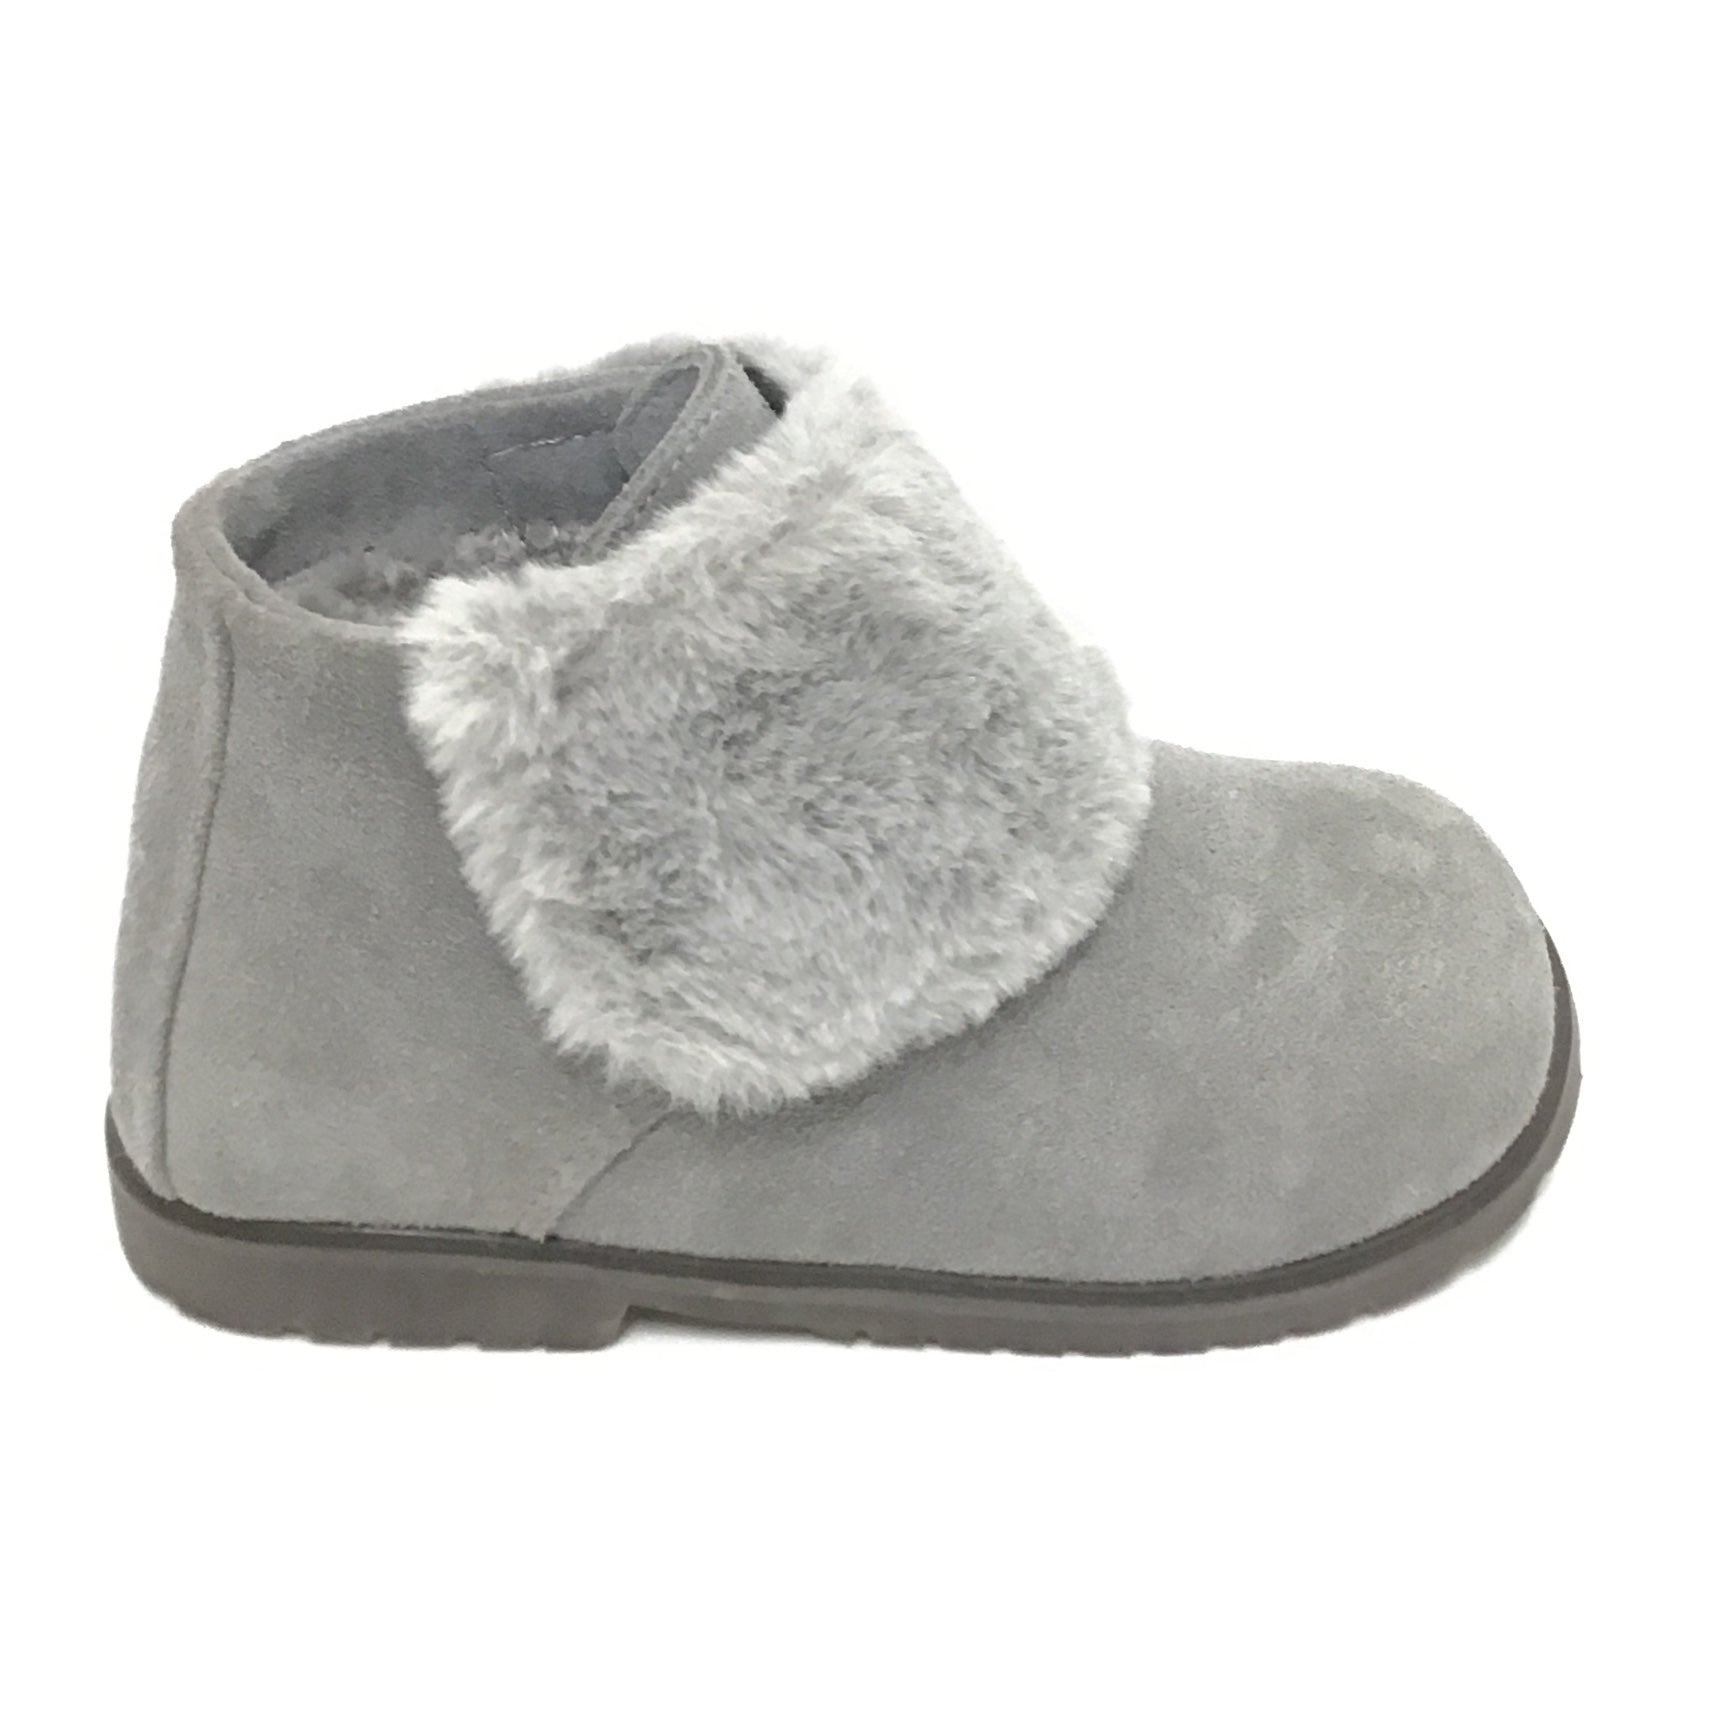 Age of Innocence Gray Suede Bootie With Fur